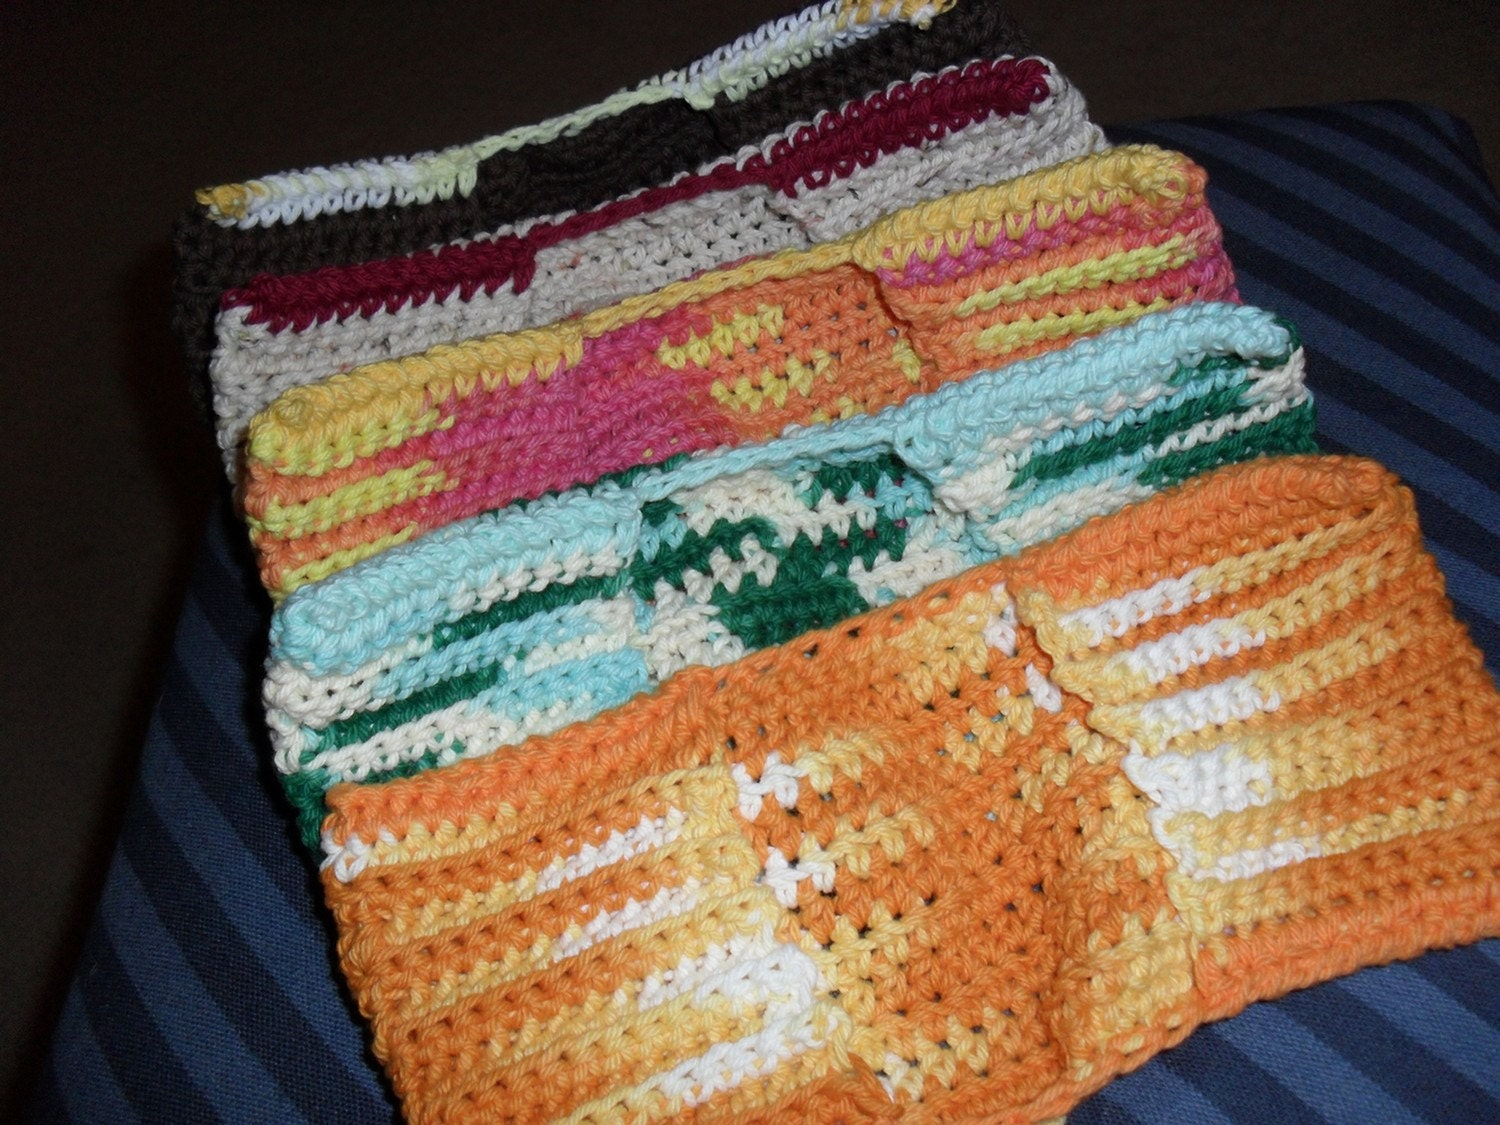 Crochet Pattern Types : Crocheted PATTERN for swiffer type dry or wet mop cover